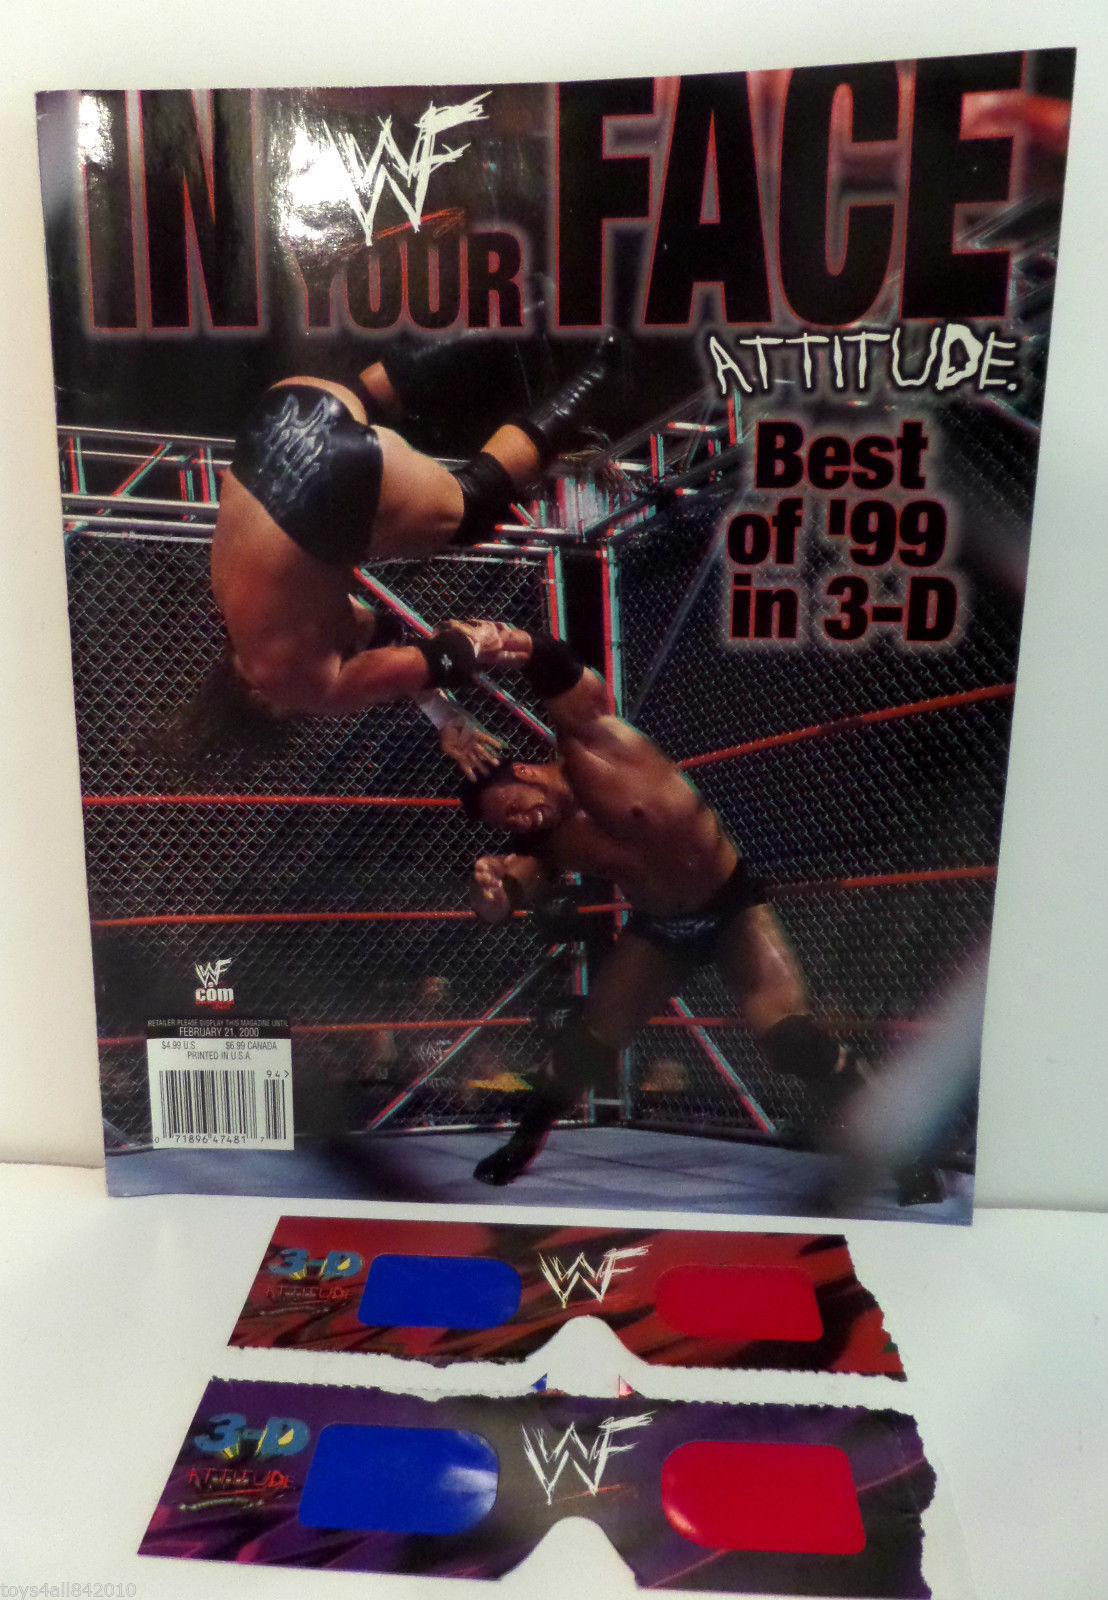 WWF In Your Face Attitude 3-D Magazine 1999 1